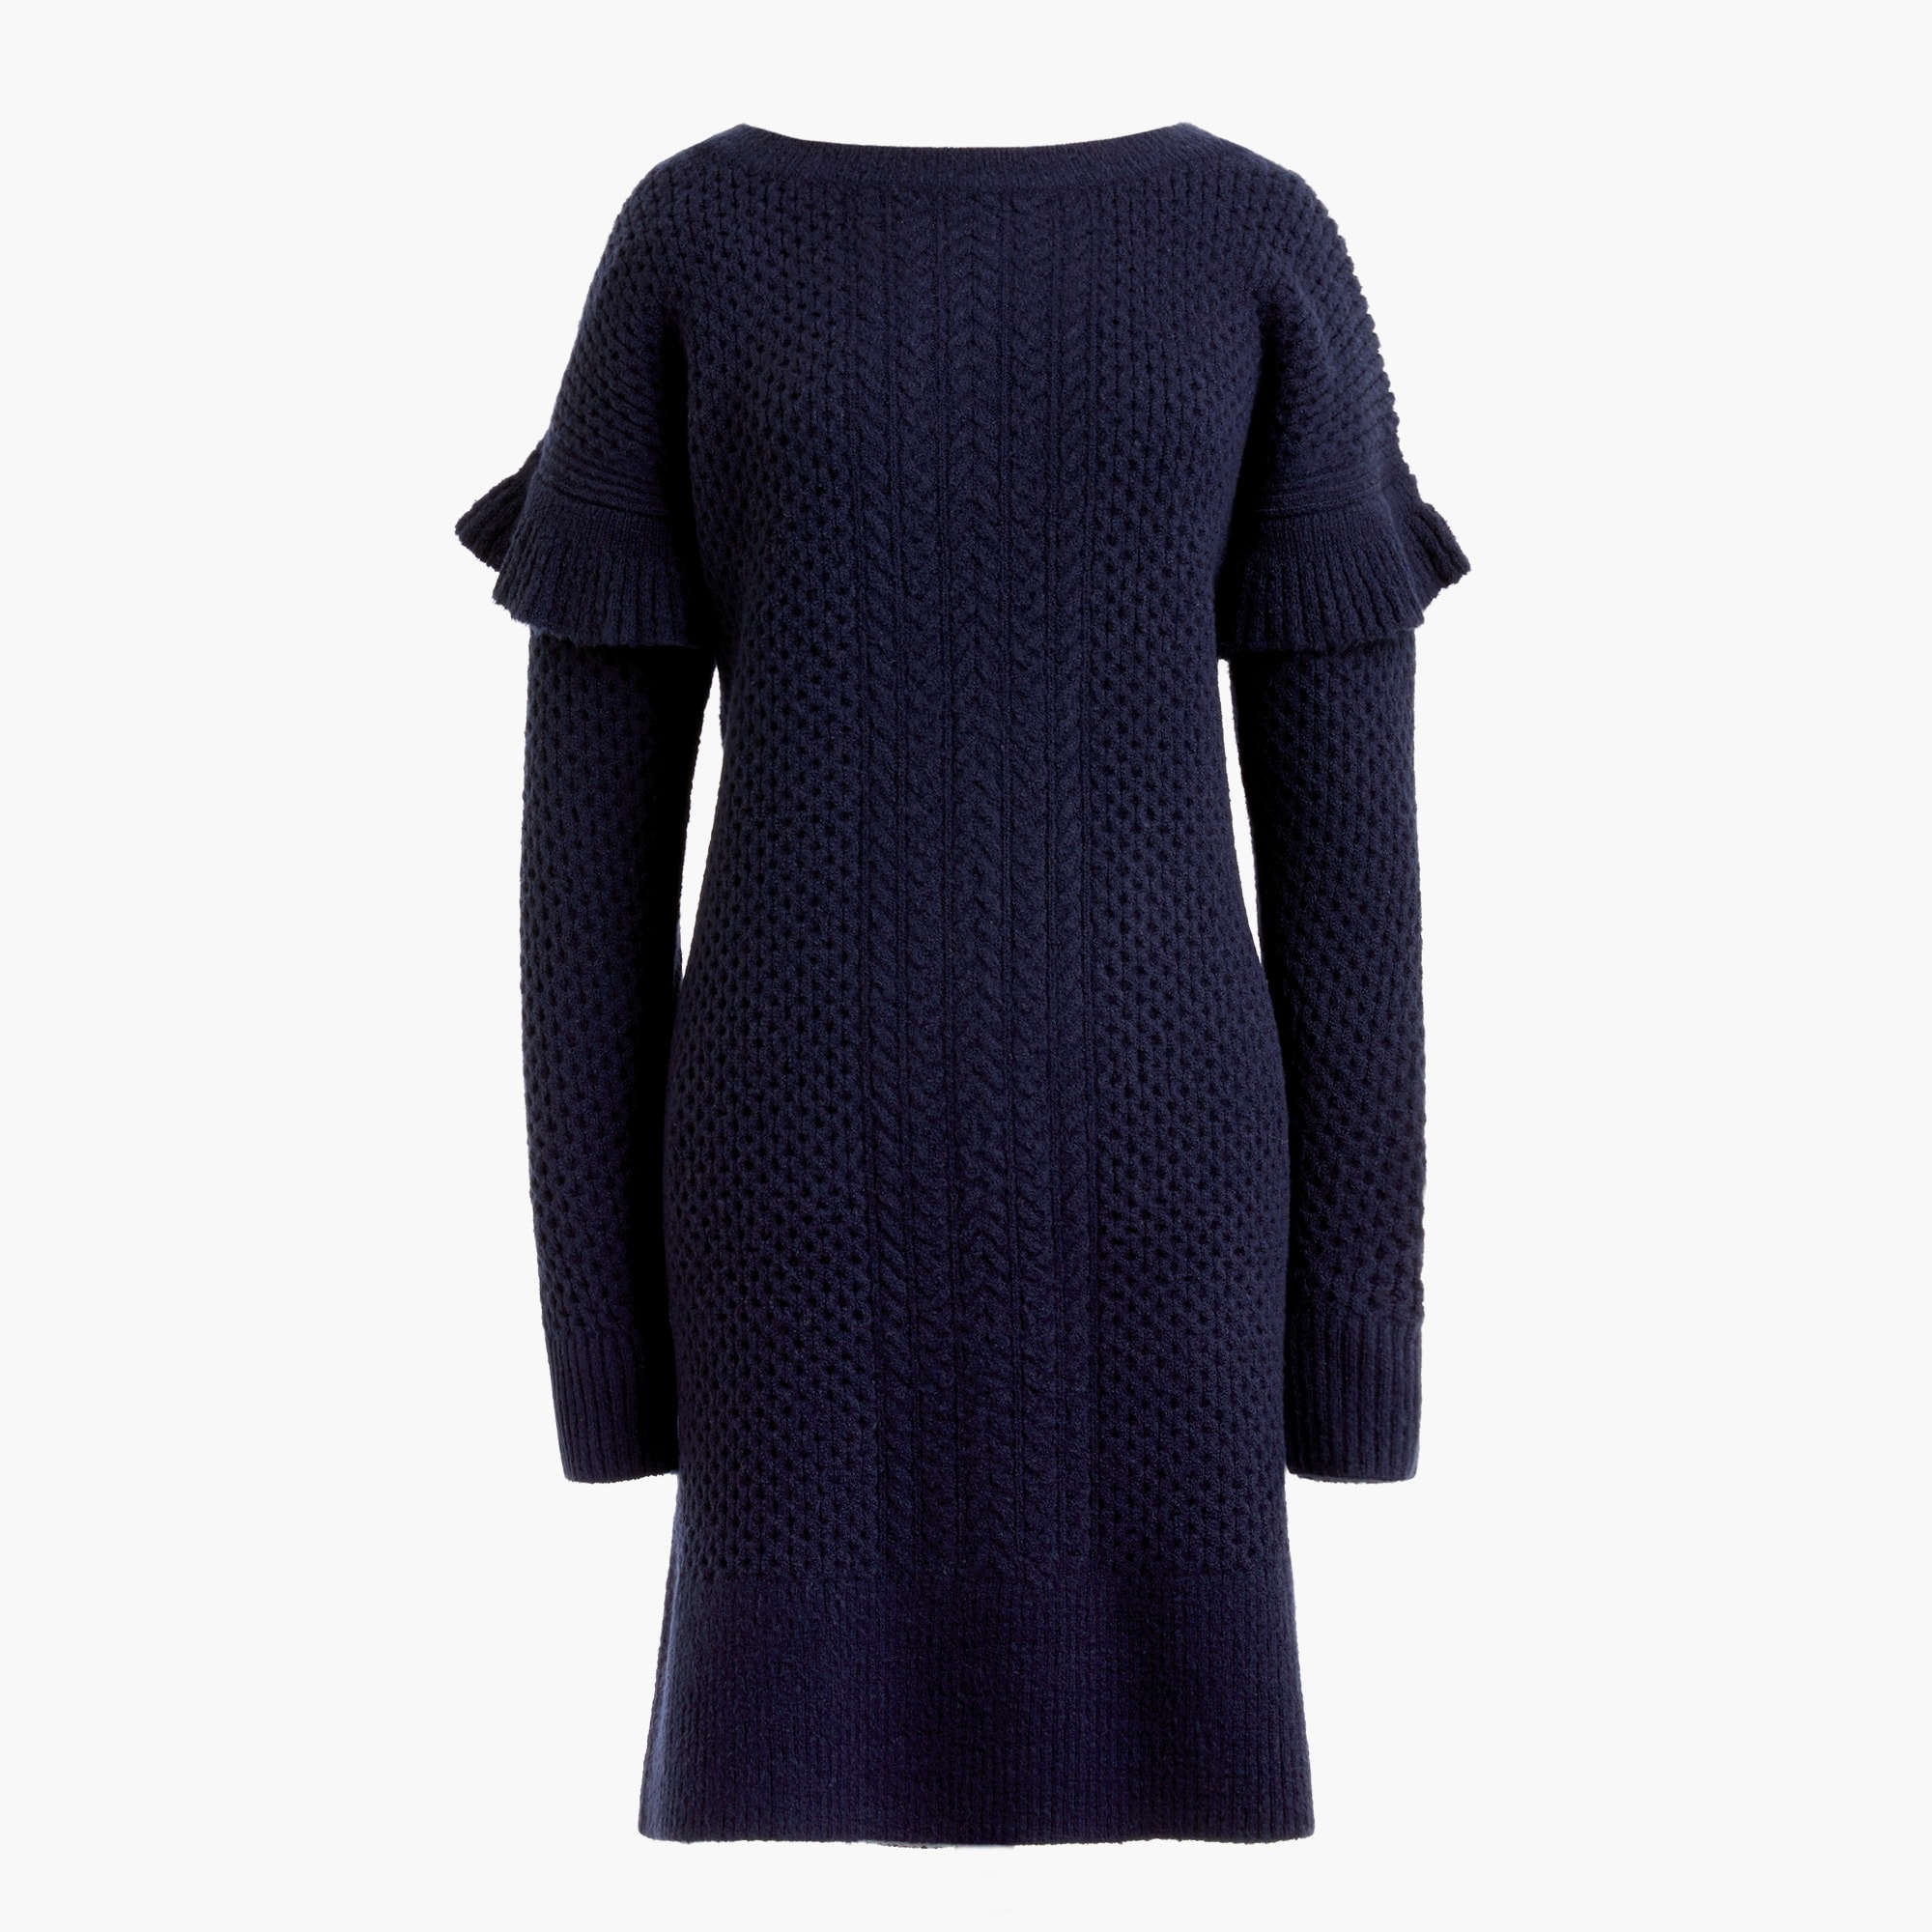 Image 4 for Cable-knit ruffle-sleeve sweater-dress